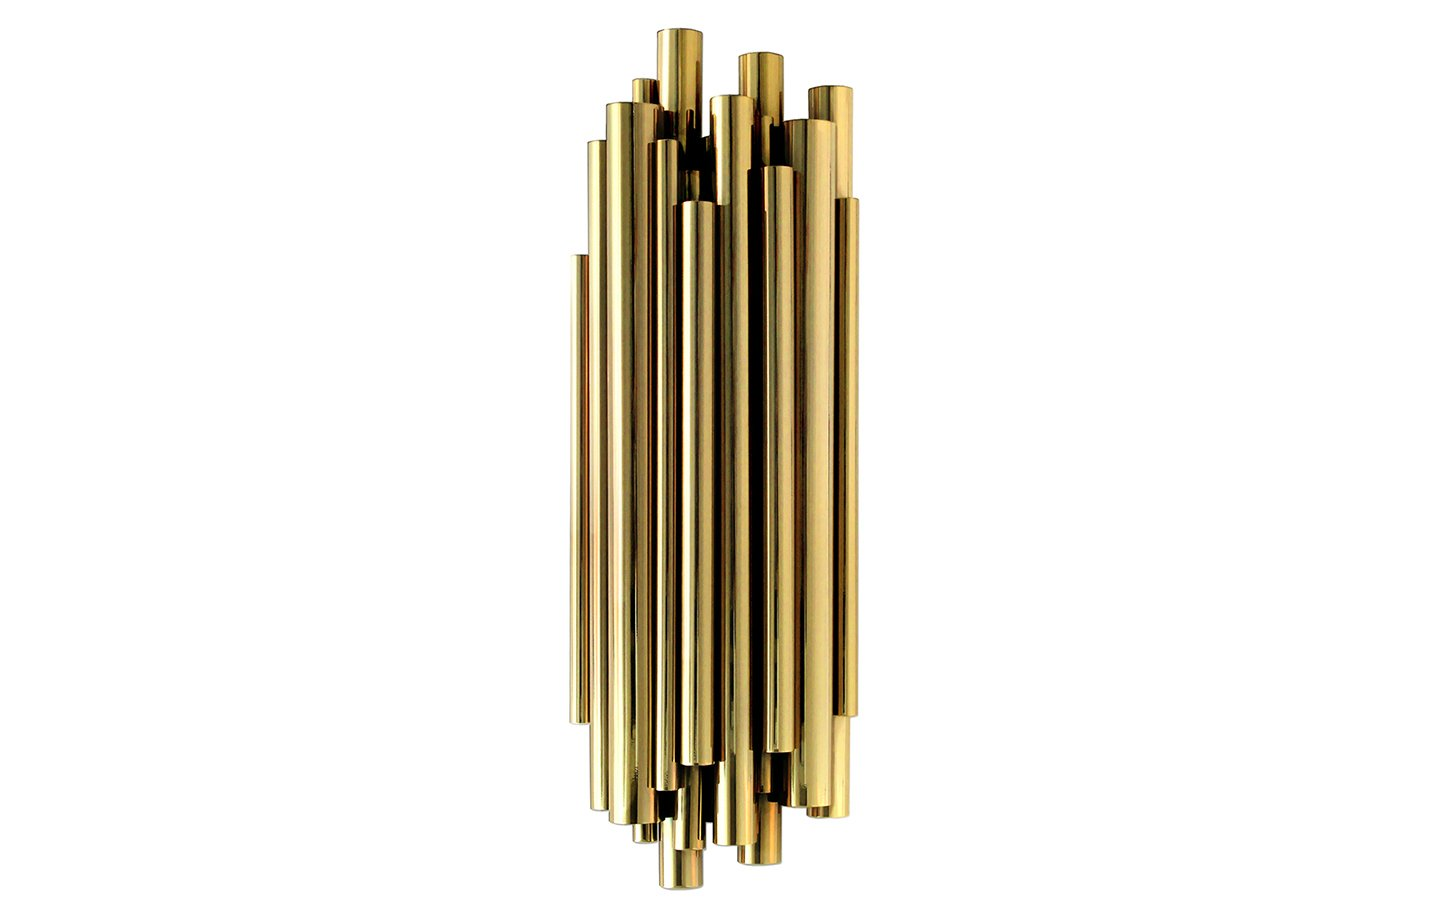 Wall Lamps Uae : Brubeck Wall Lamp Fabiia - Dubai, UAE